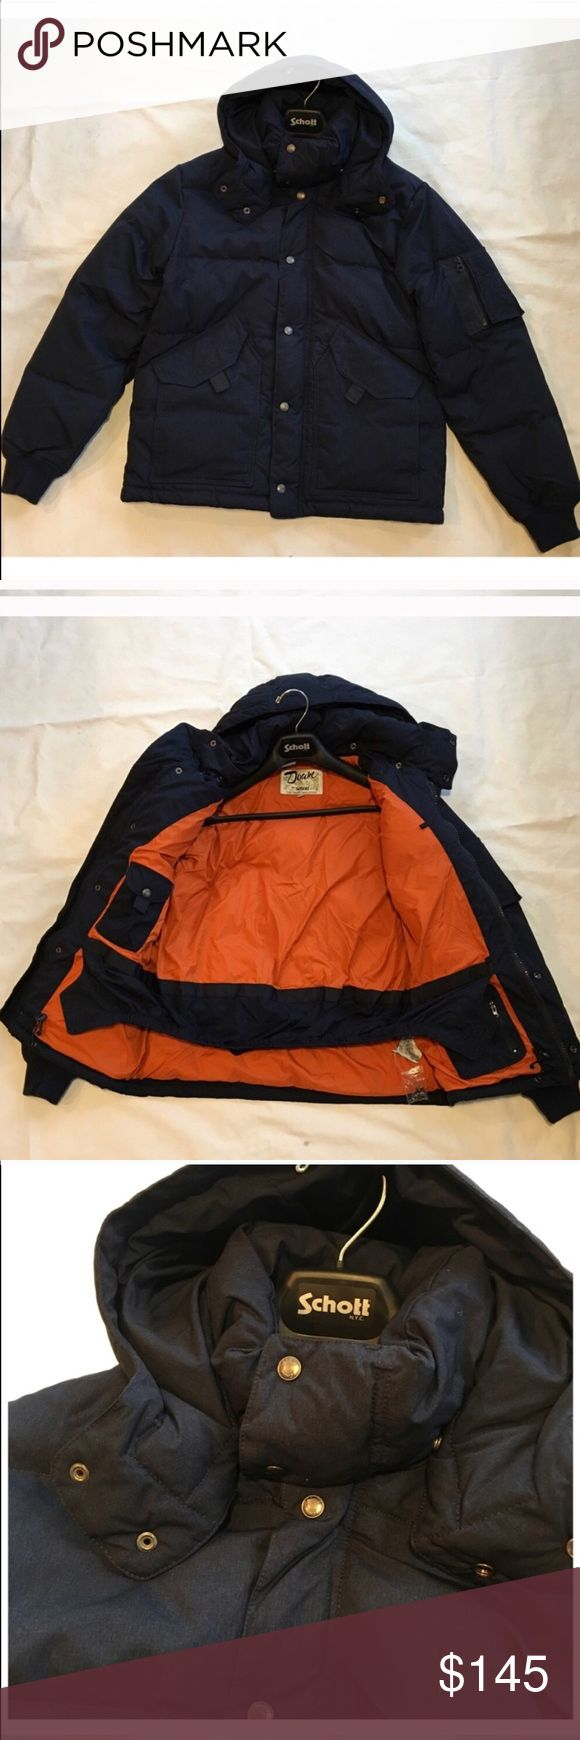 """Schott NYC Down Puffer Jacket in Navy Blue Coat Schott NYC Down Puffer Jacket in Dark Navy Blue not light  $350 retail new with tags! Super nice! High quality! True to size Warm Puffer with detachable hood, two inside pockets, Long sleeves, Front pockets Medium: armpit to armpit 23"""" length  27"""" Schott NYC Jackets & Coats Puffers"""